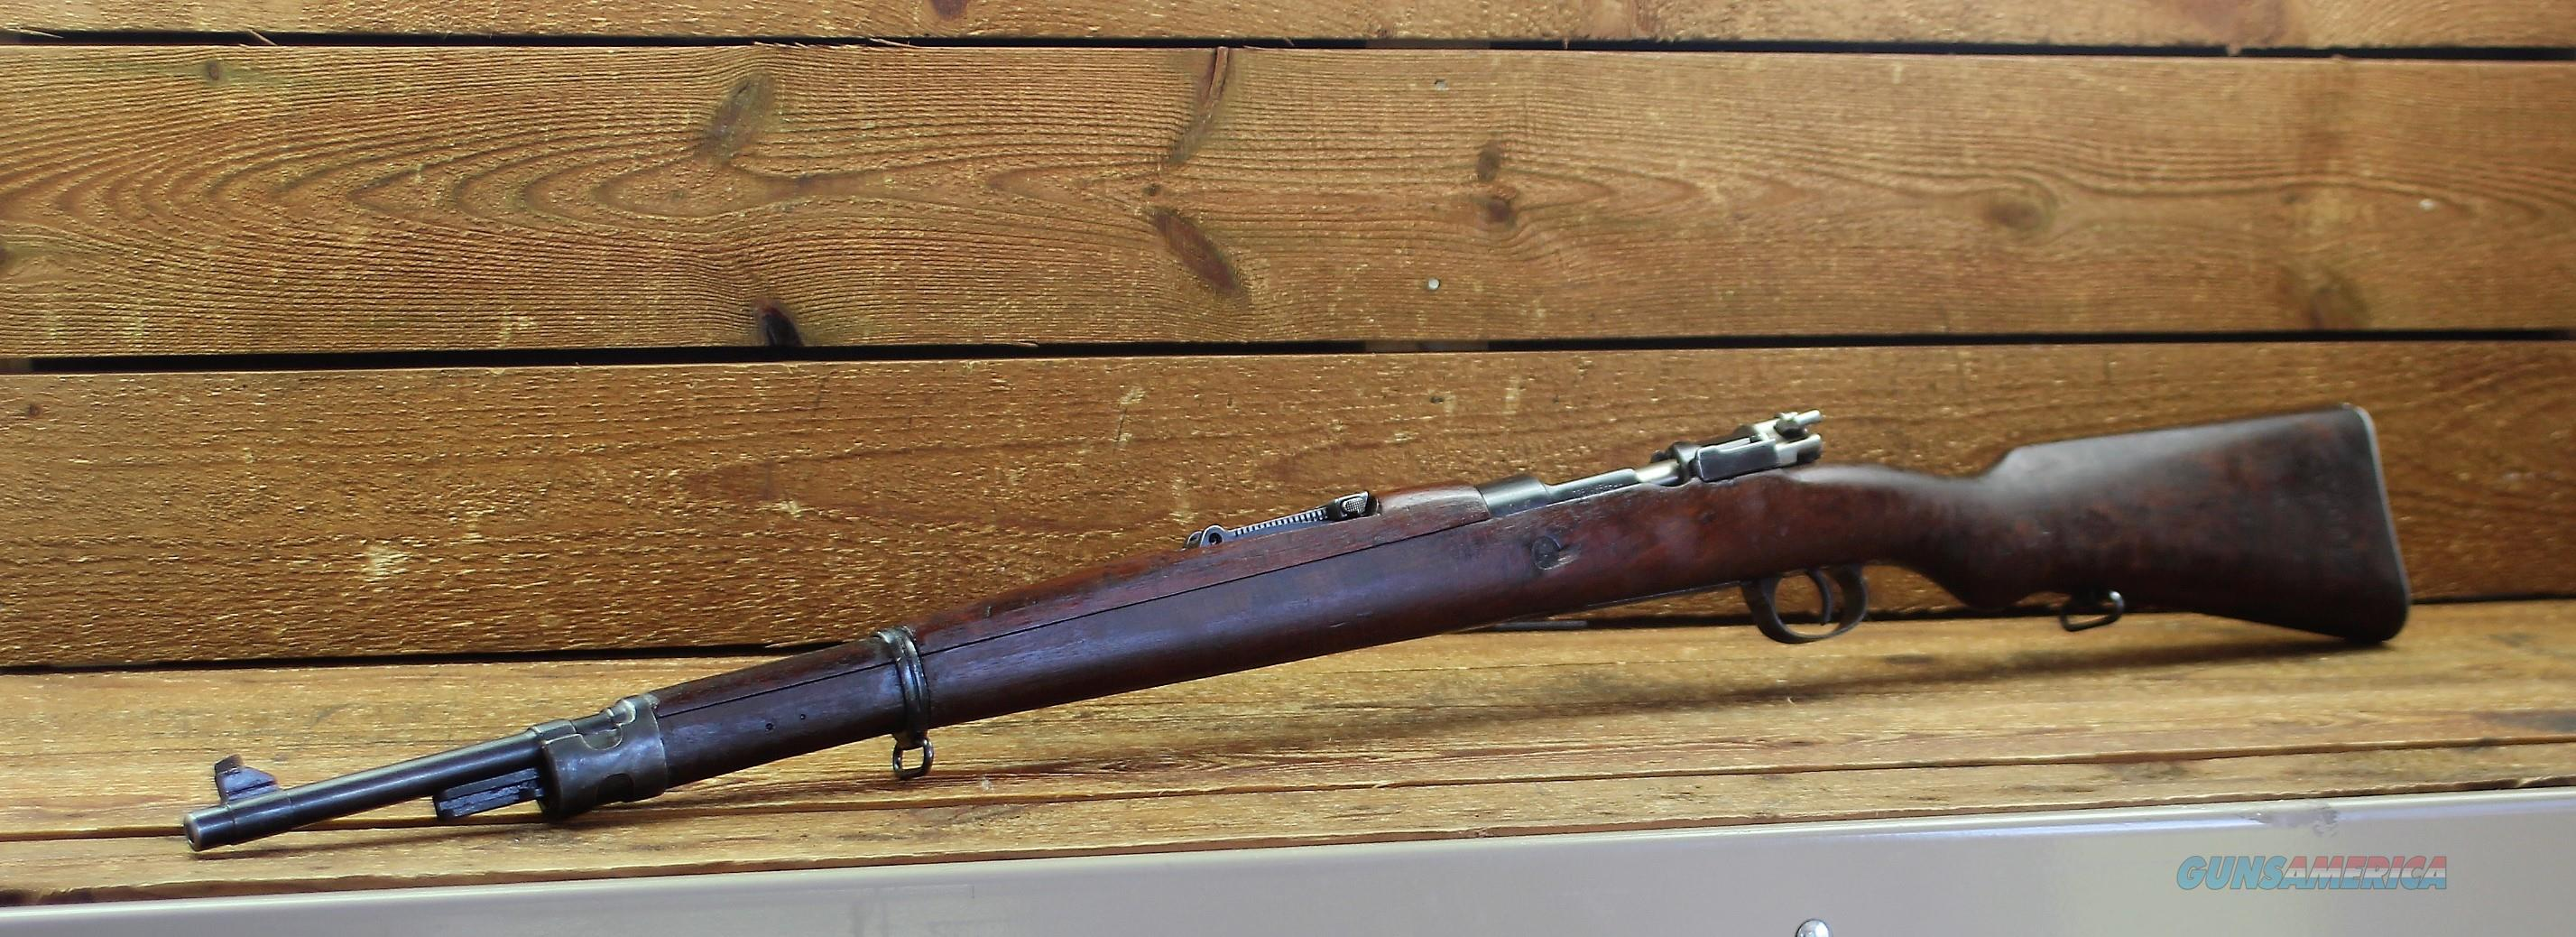 (SALE) EASY PAY $38 LAYAWAY  CI YUGO M24/47 8MM MAUSER BOLT ACTION RIFLE RI2777EVC serial number K7824 	787450426177  Guns > Rifles > Century International Arms - Rifles > Rifles